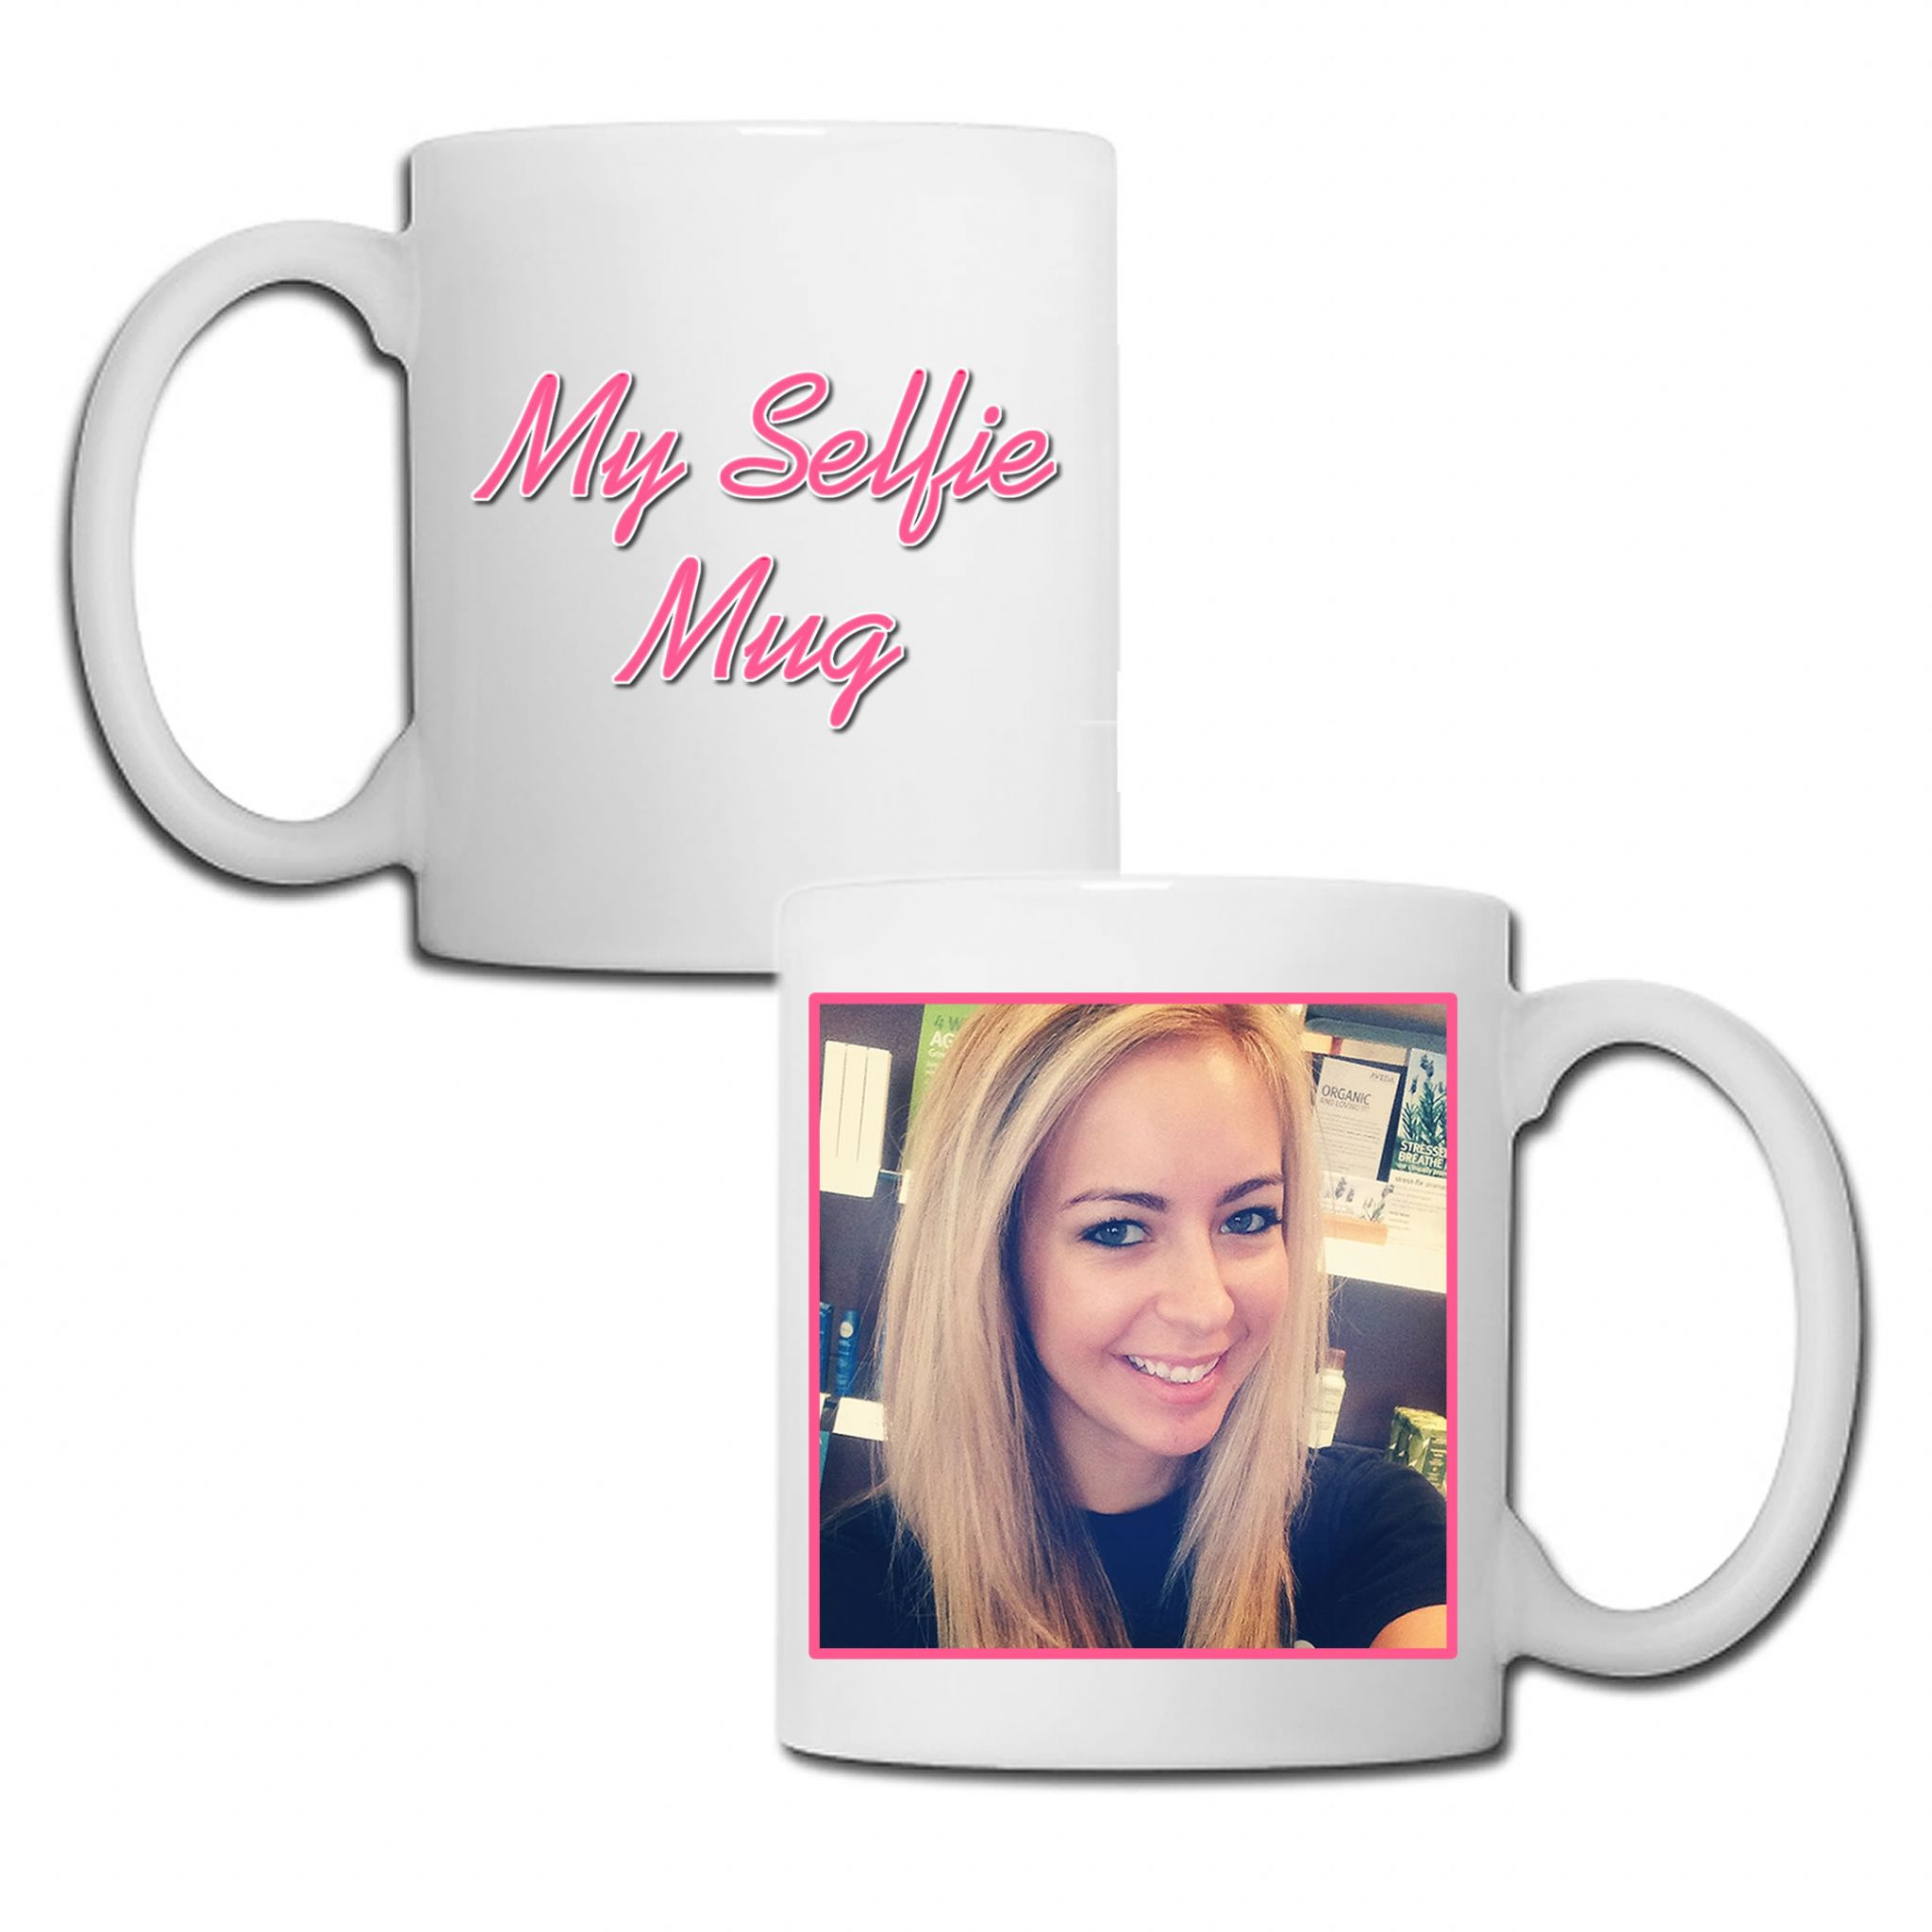 Little Gifts With Love - Personalised Girls My Selfie Photo Mug + Free Standard Delivery